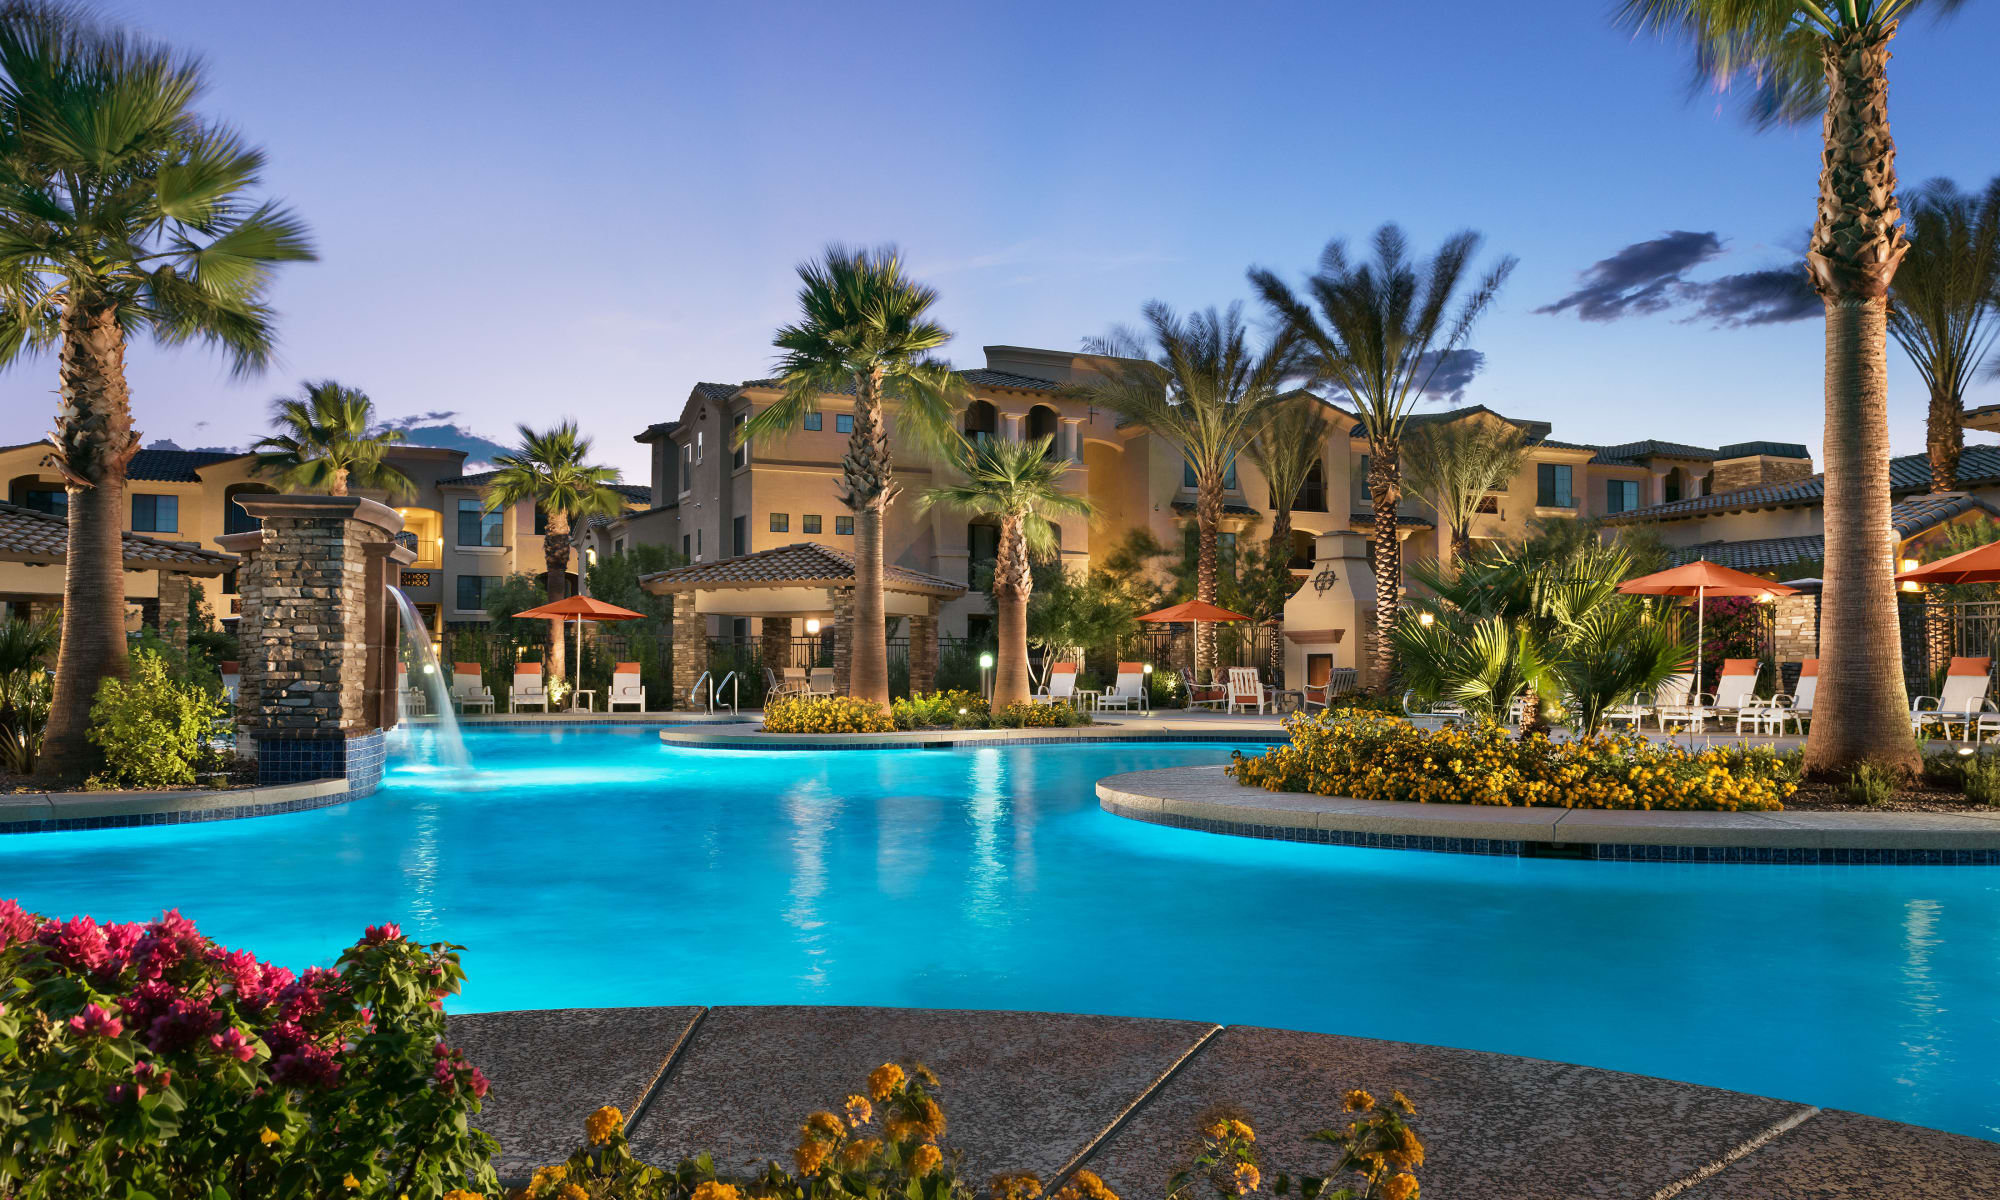 Luxury swimming pool at San Milan in Phoenix, Arizona